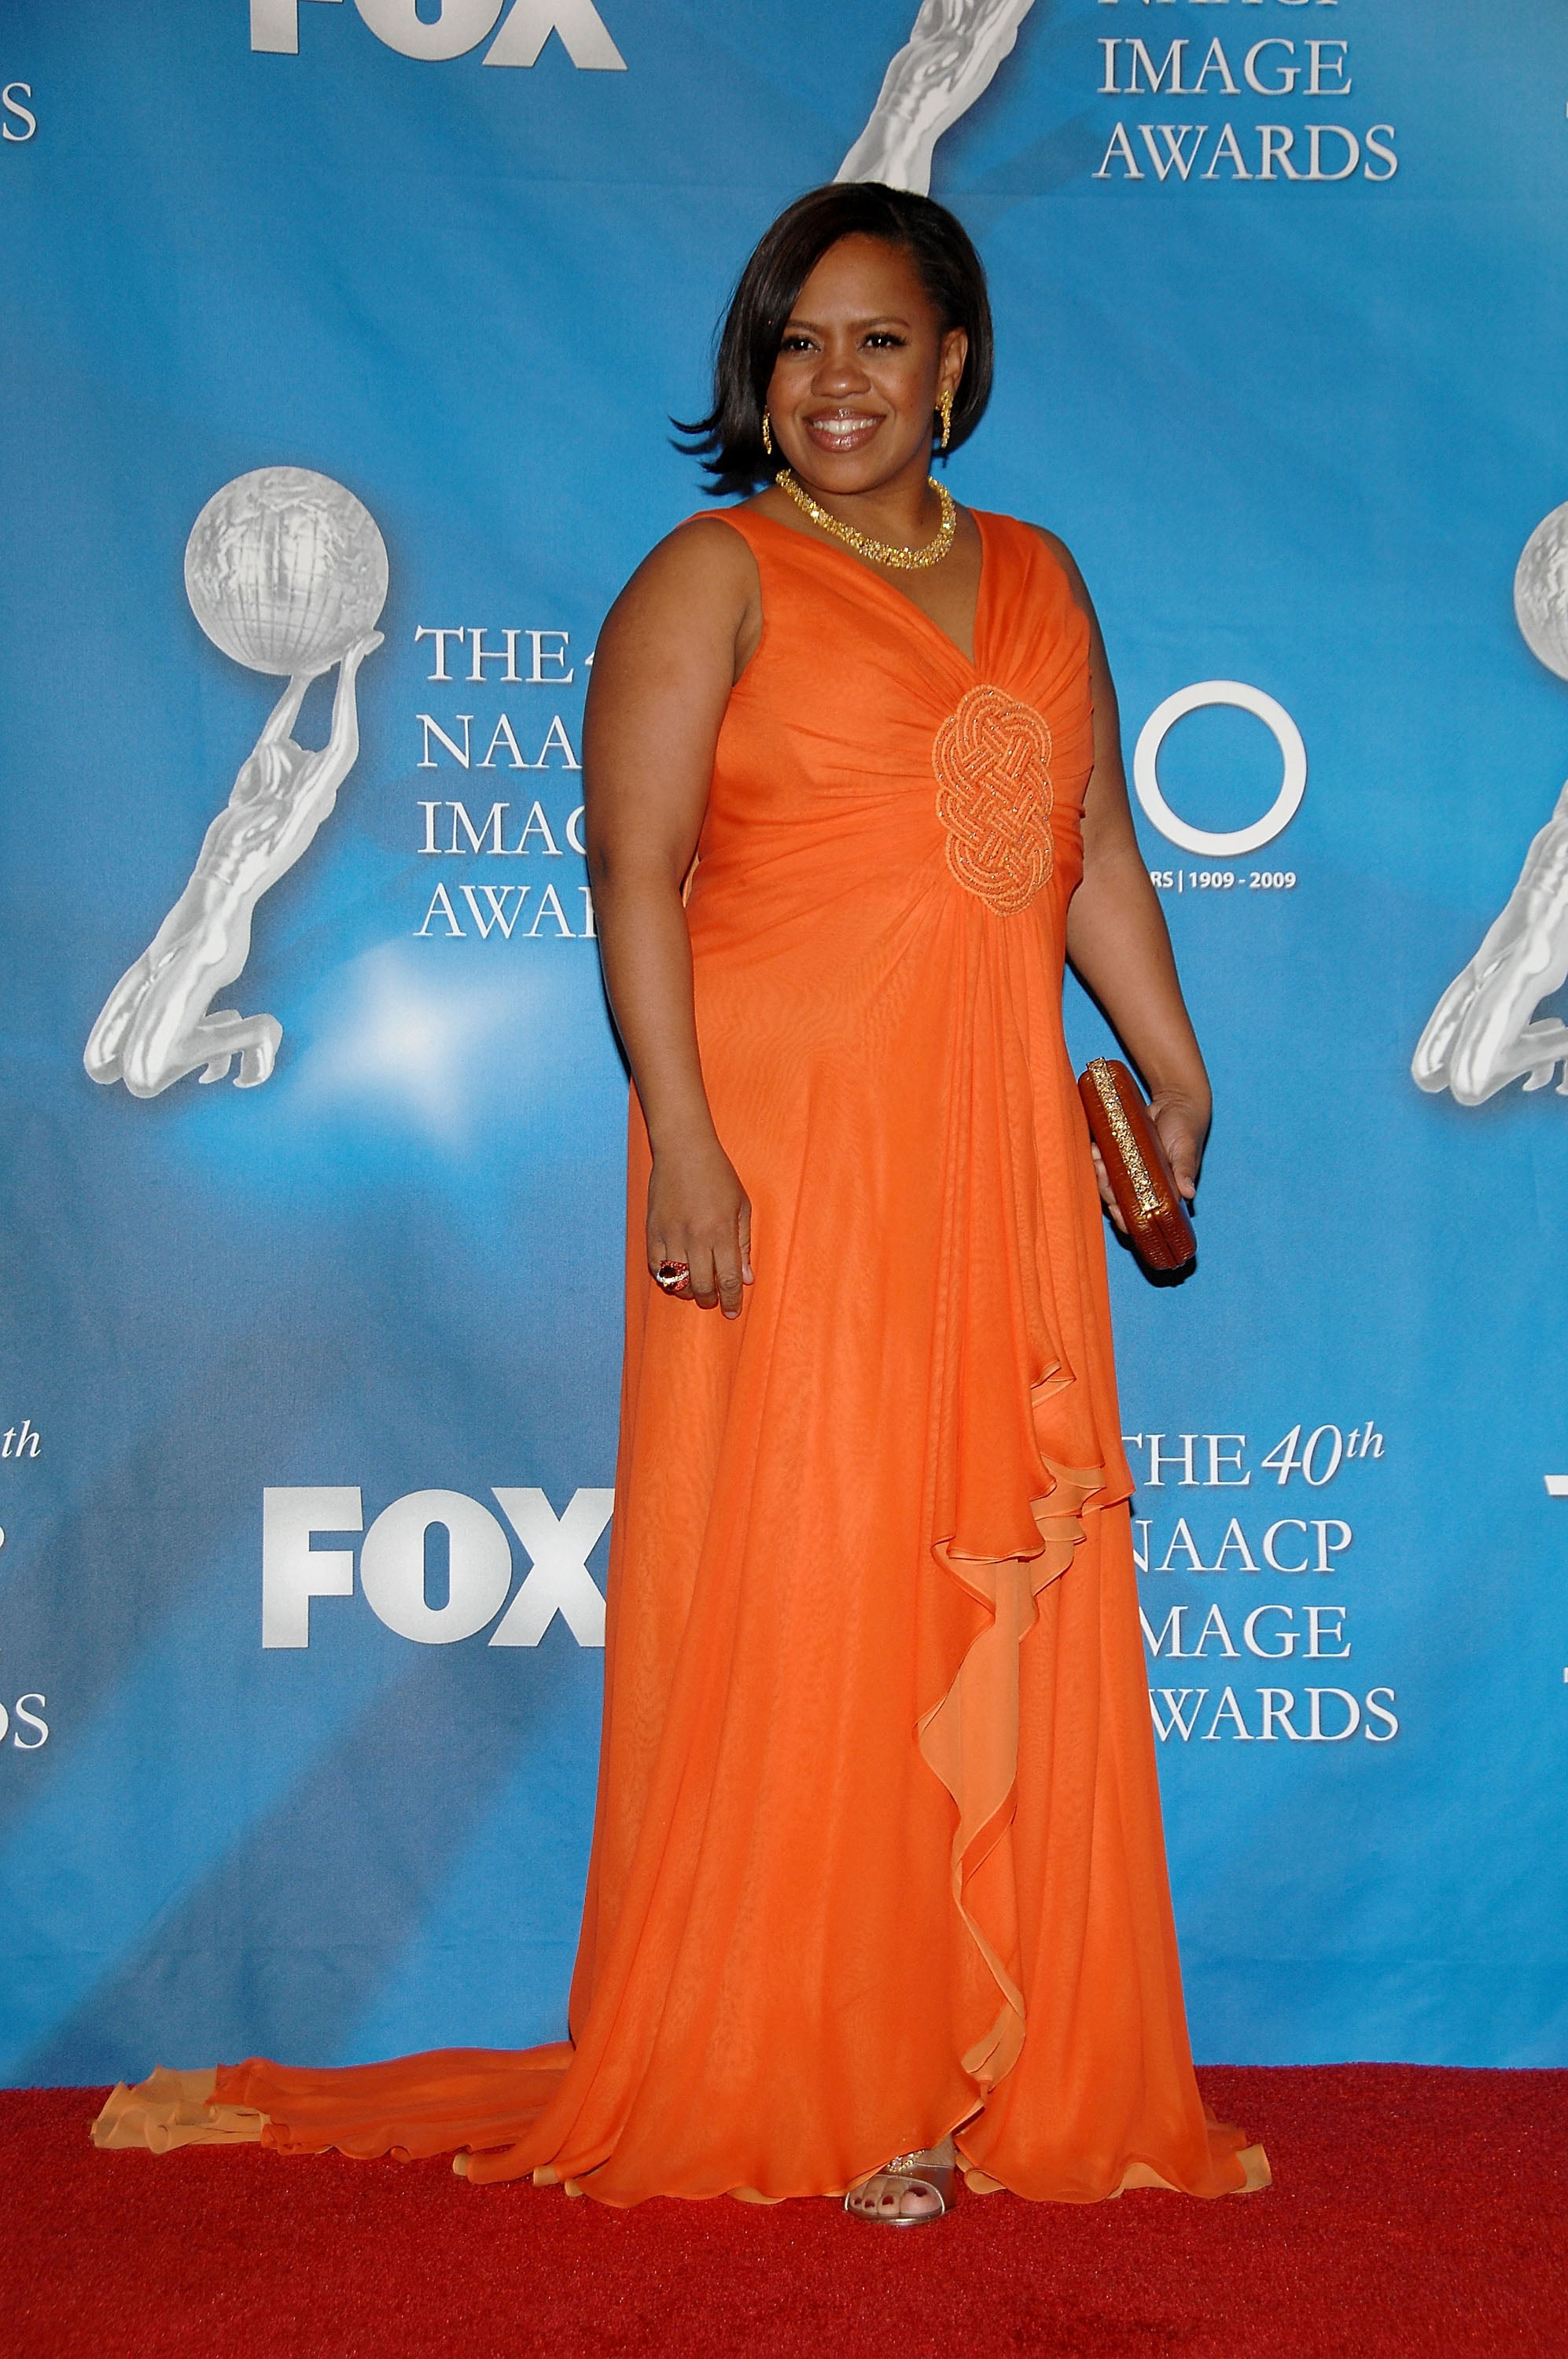 Photos of 2009 NAACP Image Awards Including Halle Berry, Beyonce ...